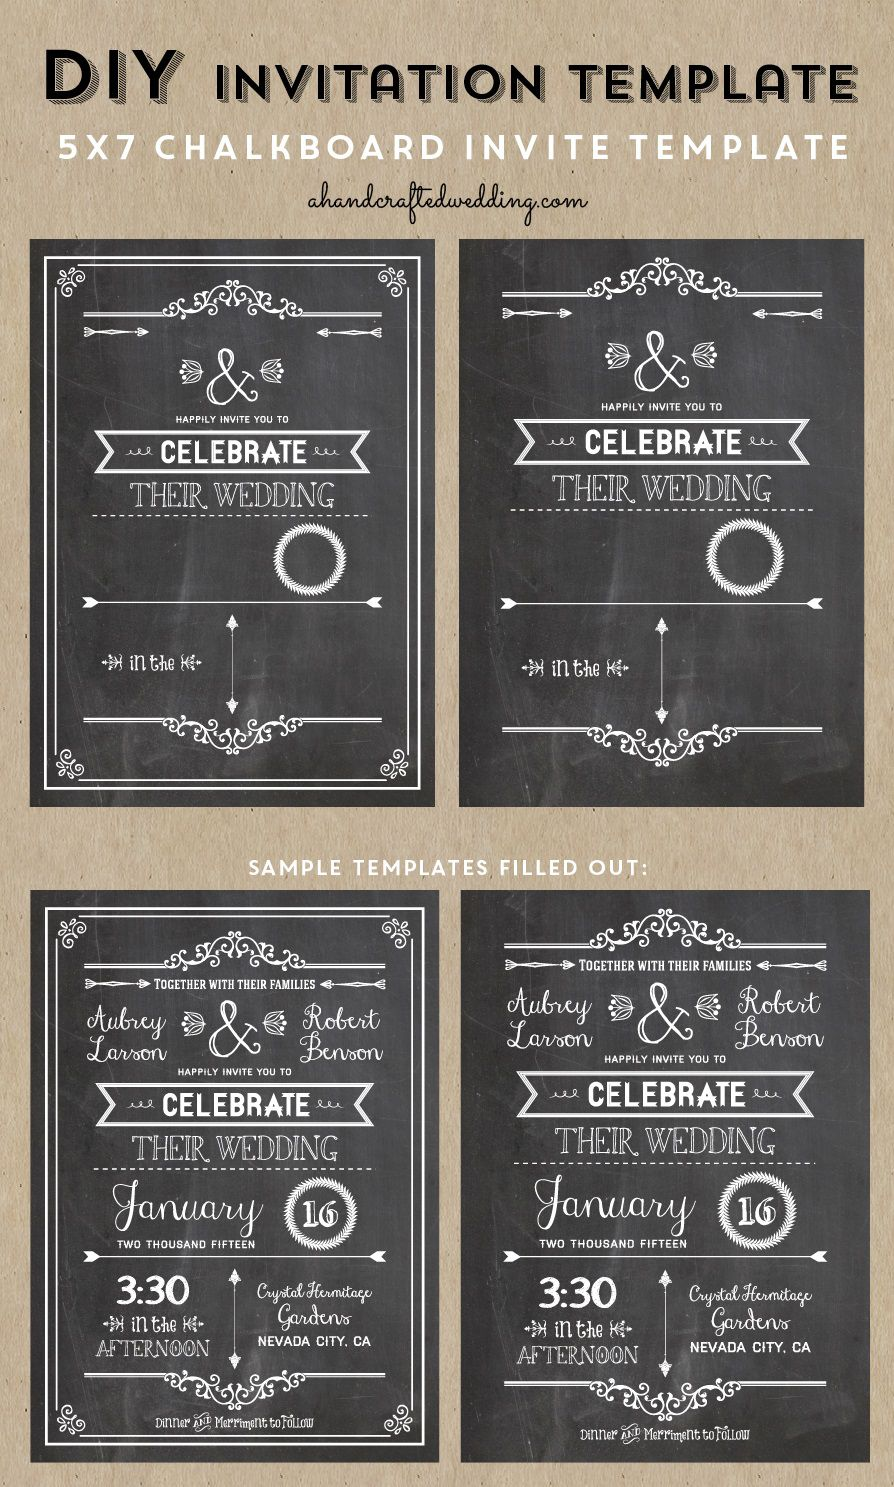 005 Wondrou Chalkboard Invitation Template Free Picture  Birthday DownloadFull